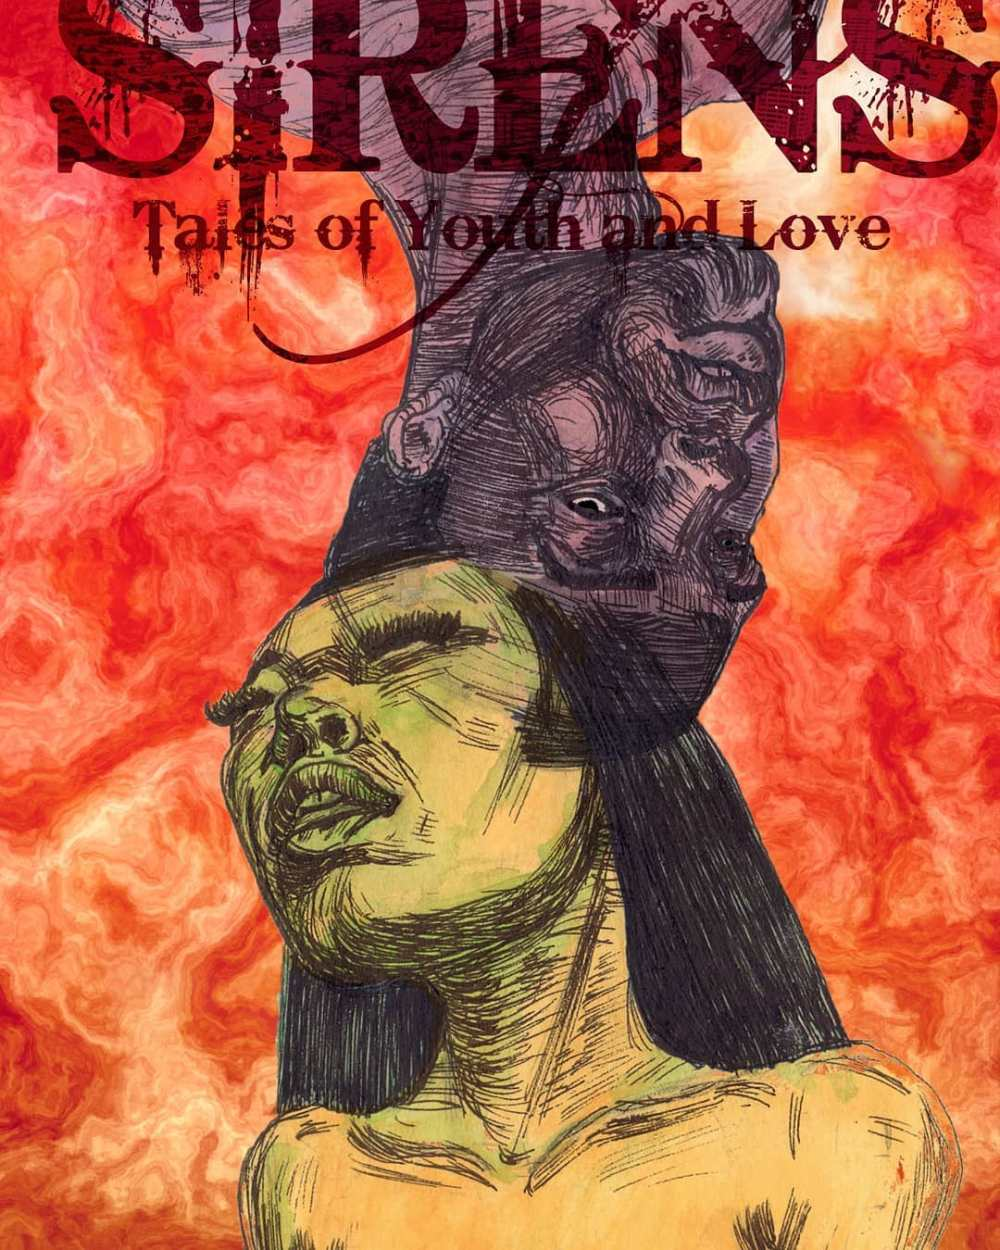 Book Review: Sirens Tales Of Youth And Love by Leroy Mthulisi Ndlovu